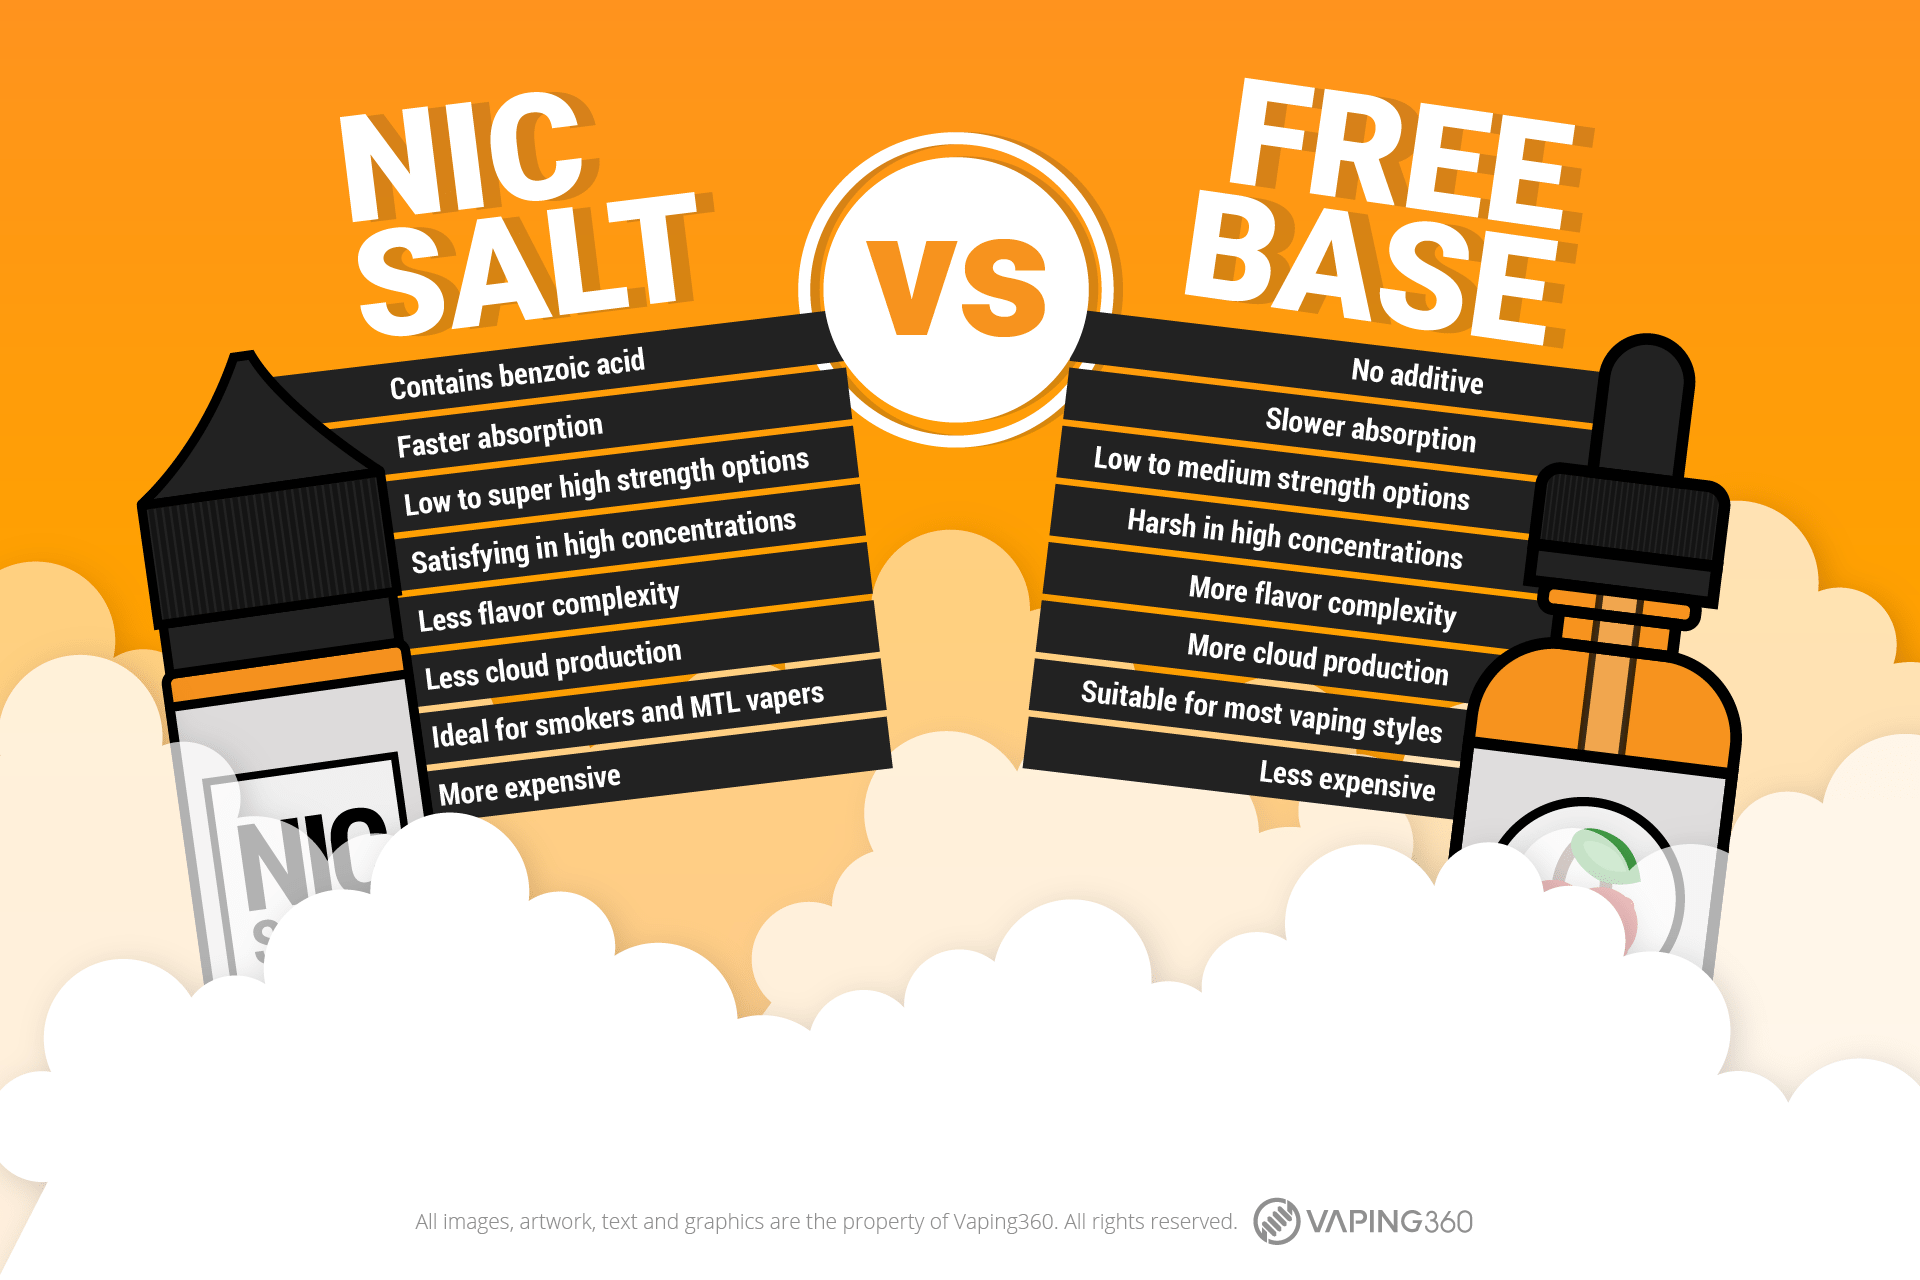 nic-salt-vs-free-base